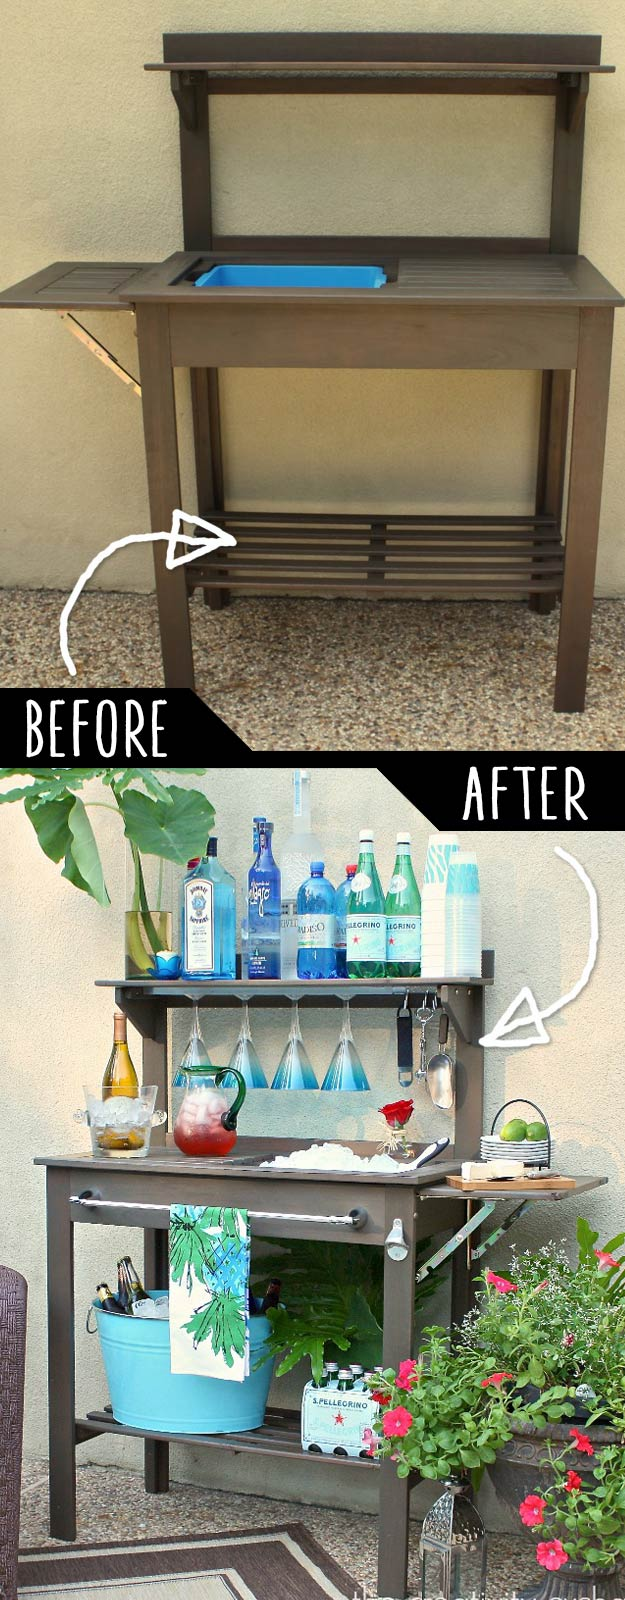 DIY Furniture Hacks | Potting Bench Turned Outdoor Bar | Cool Ideas for Creative Do It Yourself Furniture Made From Things You Might Not Expect - http://diyjoy.com/diy-furniture-hacks